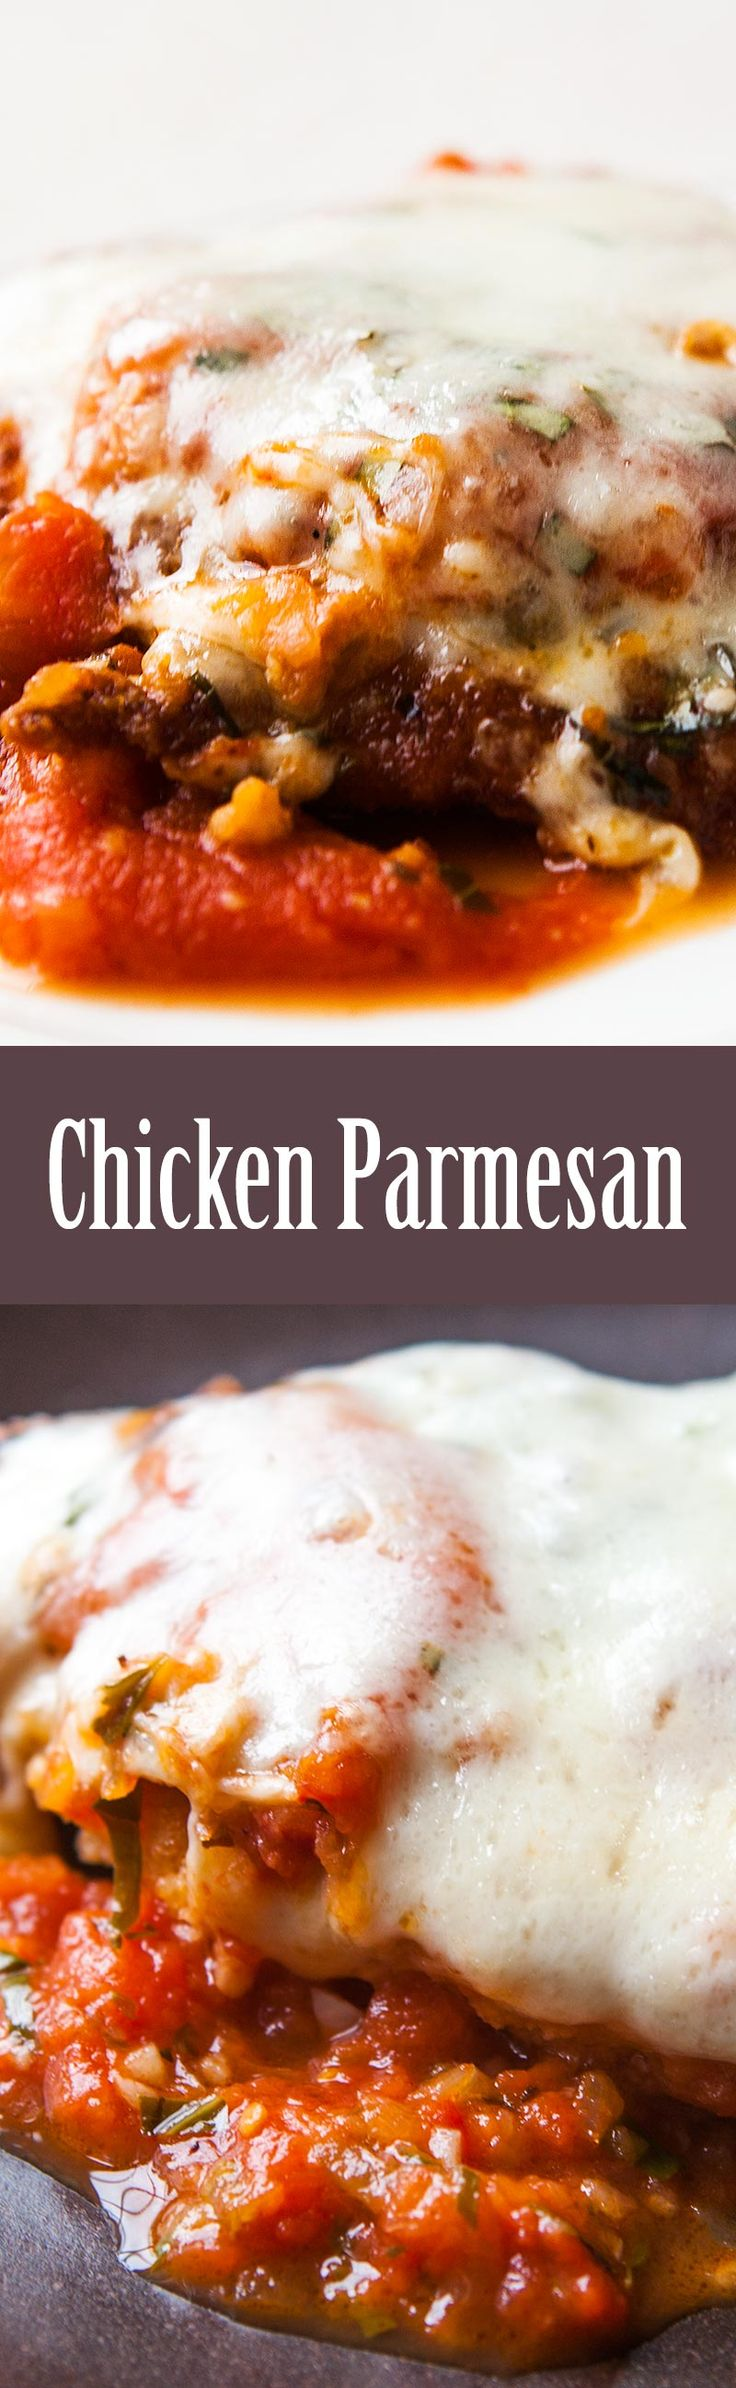 Classic Chicken Parm! Chicken cutlets, breaded and fried, smothered with tomato sauce, covered with Mozzarella and Parmesan cheeses, and baked until the cheese is bubbly and melts into every nook and cranny. On SimplyRecipes.com